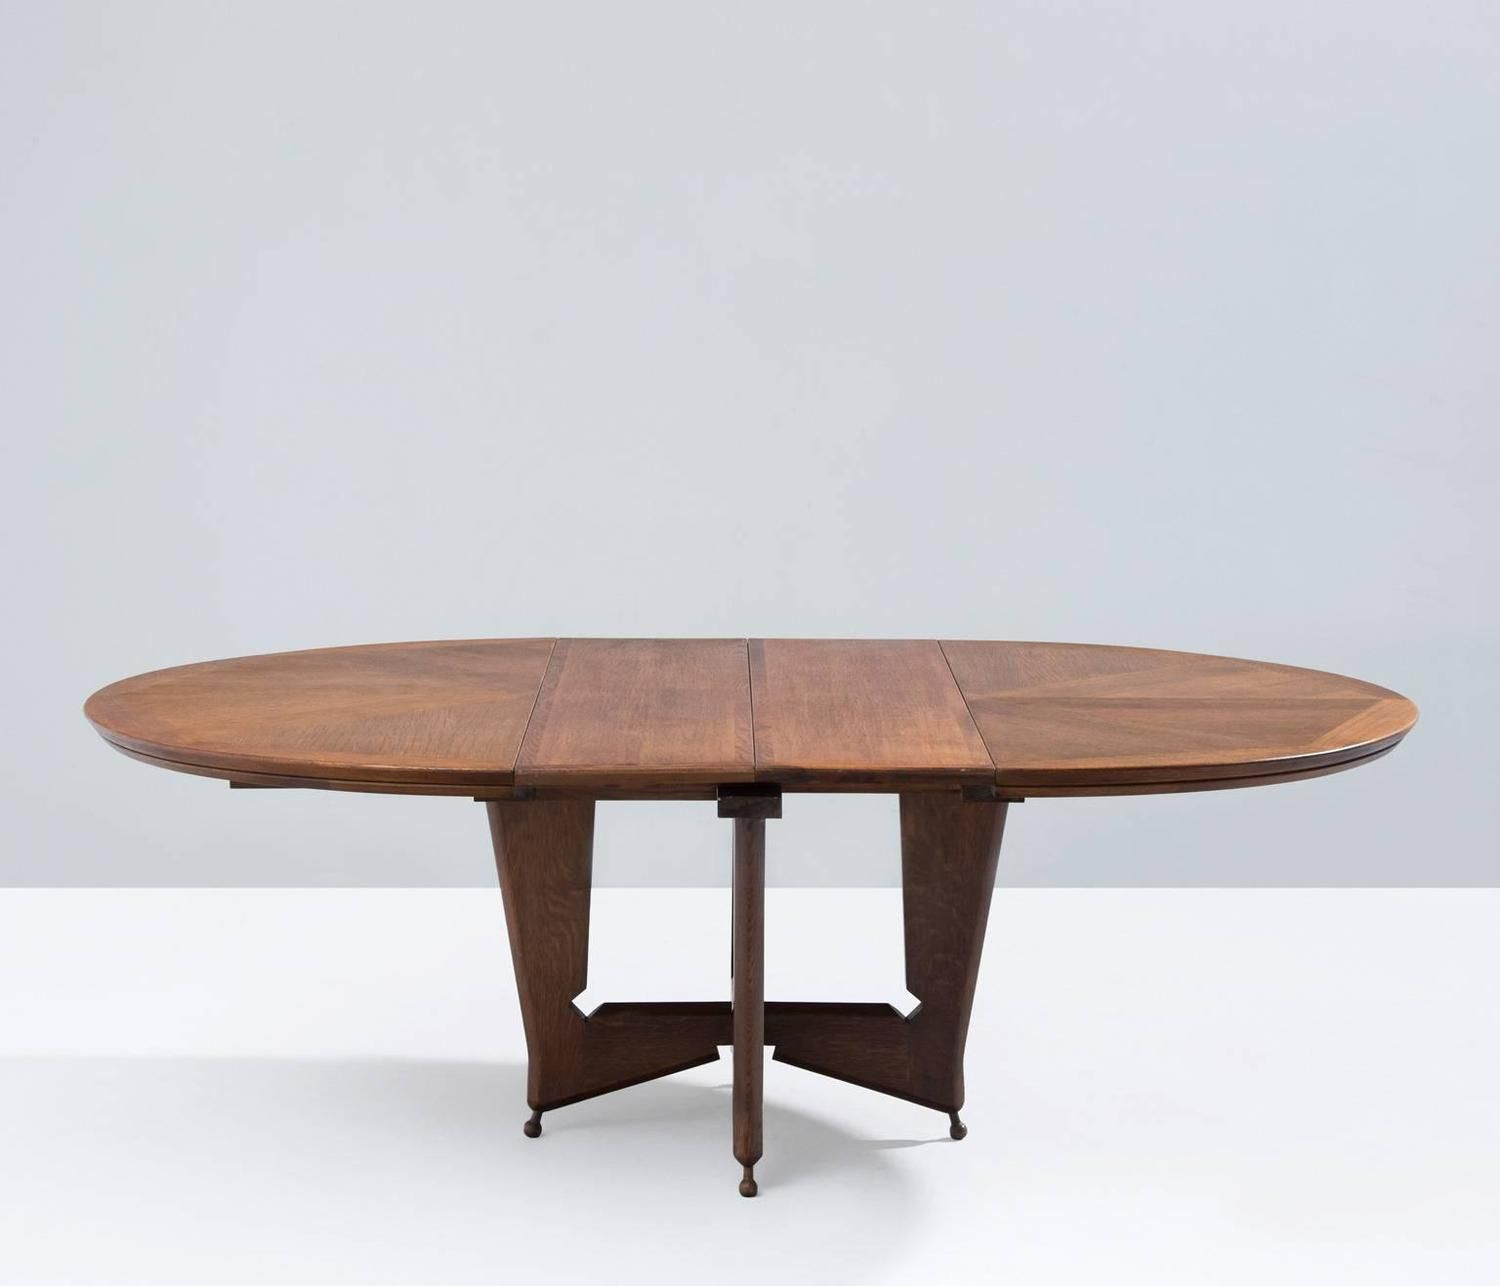 Extendible Round Dining Table by Guillerme et Chambron | From a unique collection of antique and modern dining room tables at https://www.1stdibs.com/furniture/tables/dining-room-tables/